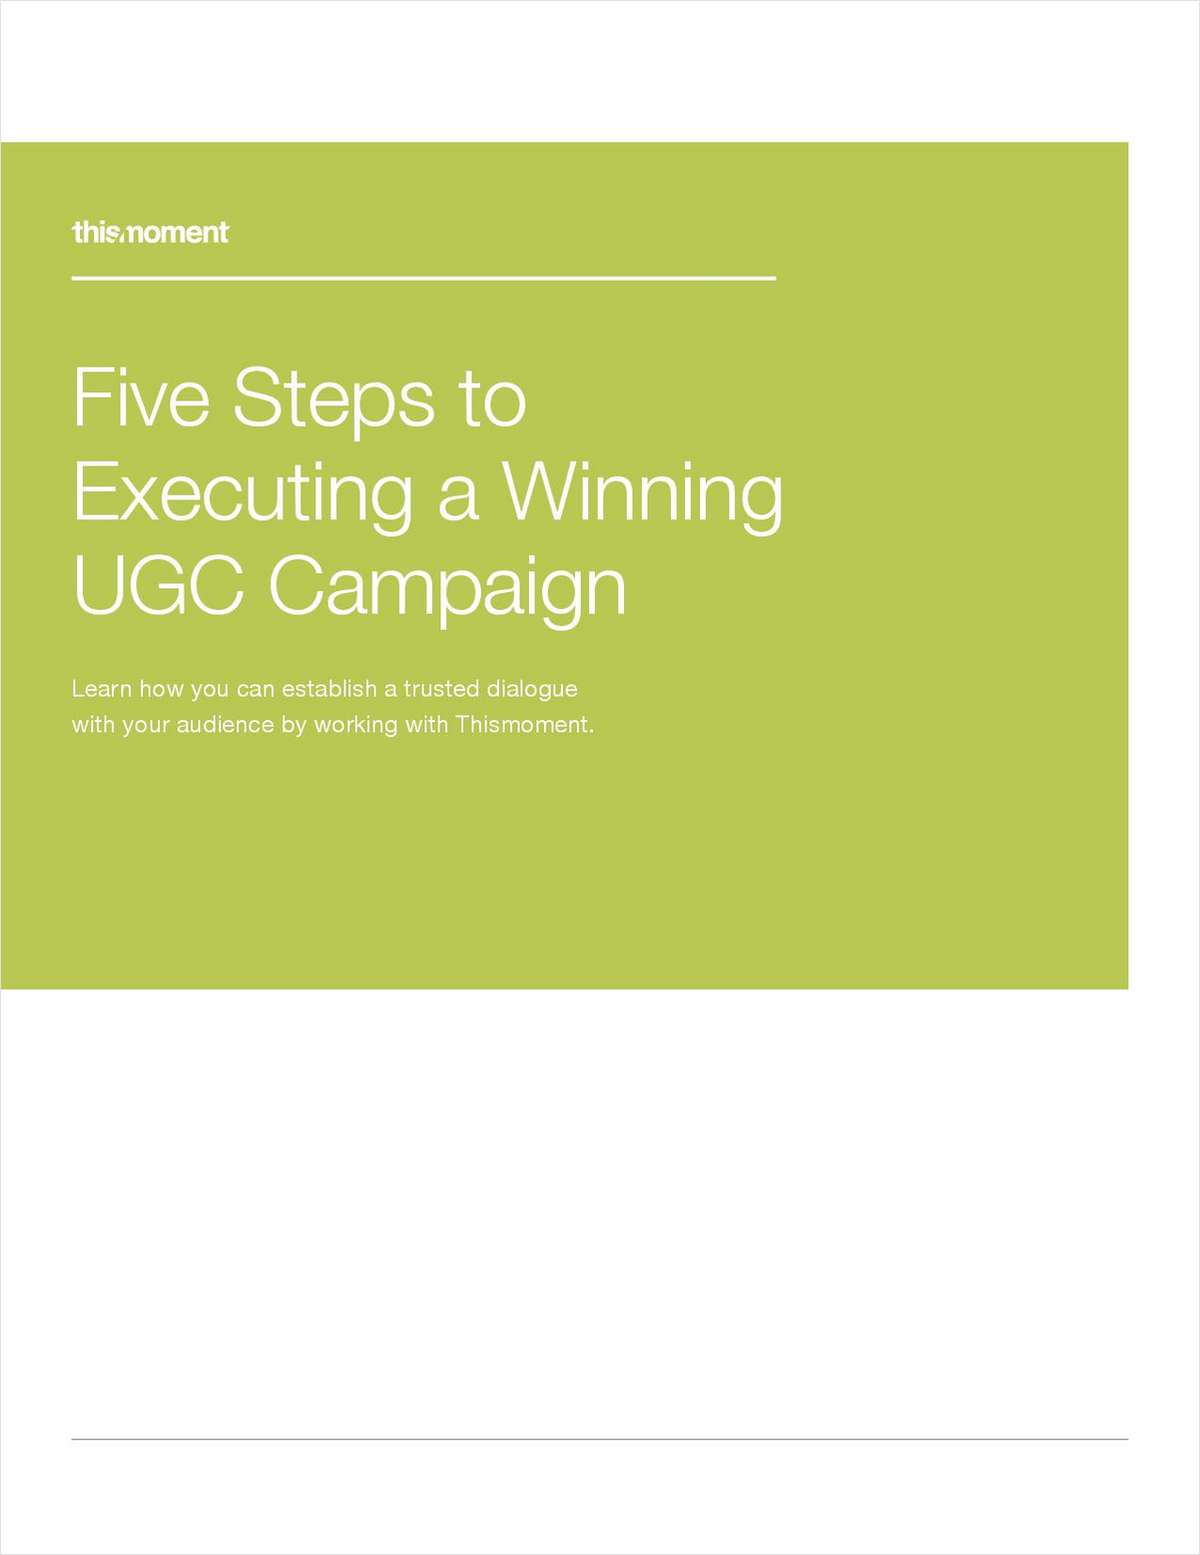 Five Steps to Executing a Winning UGC Campaign